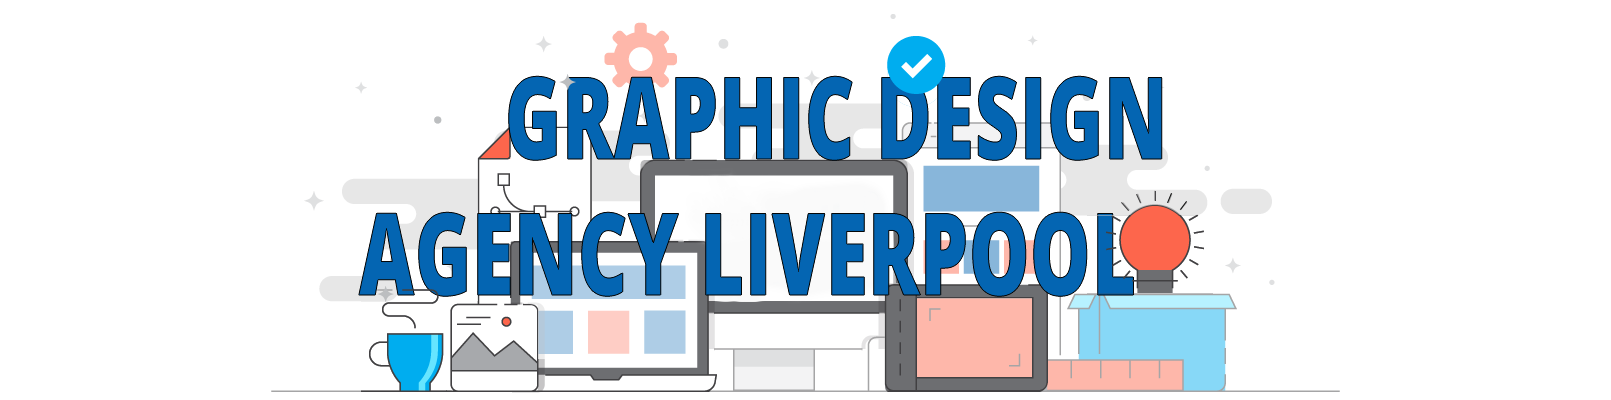 graphic design agency liverpool header with transparent background